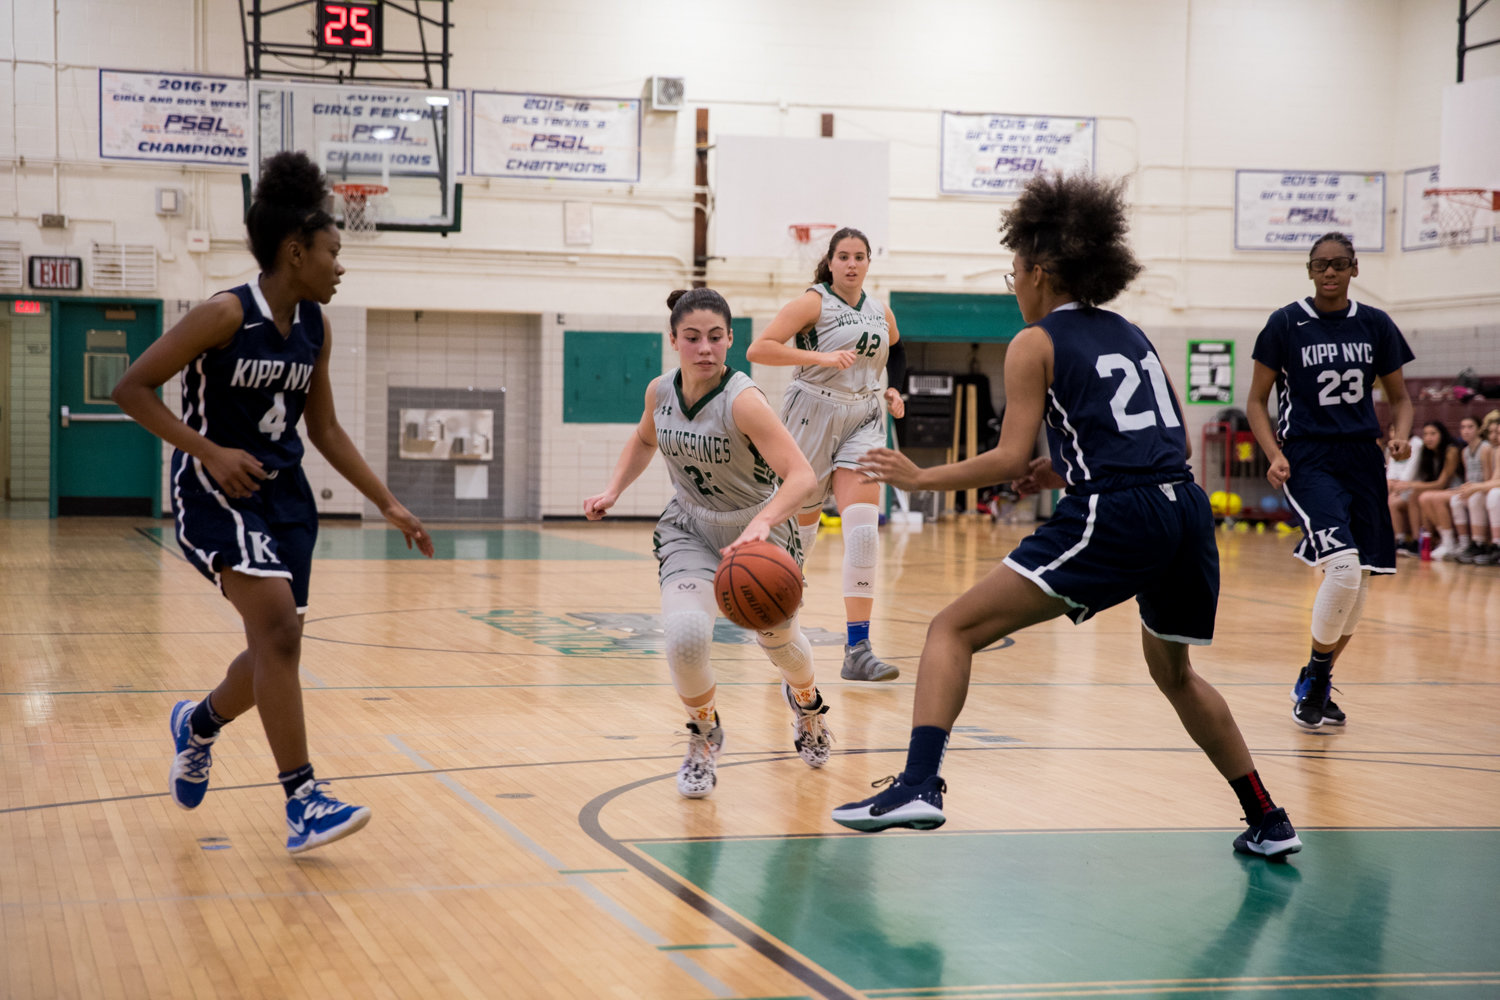 Bronx Science's Carolina Lopez had a team-high 16 points in the Wolverines' victory over Longwood, a win that clinched the division title for Science.